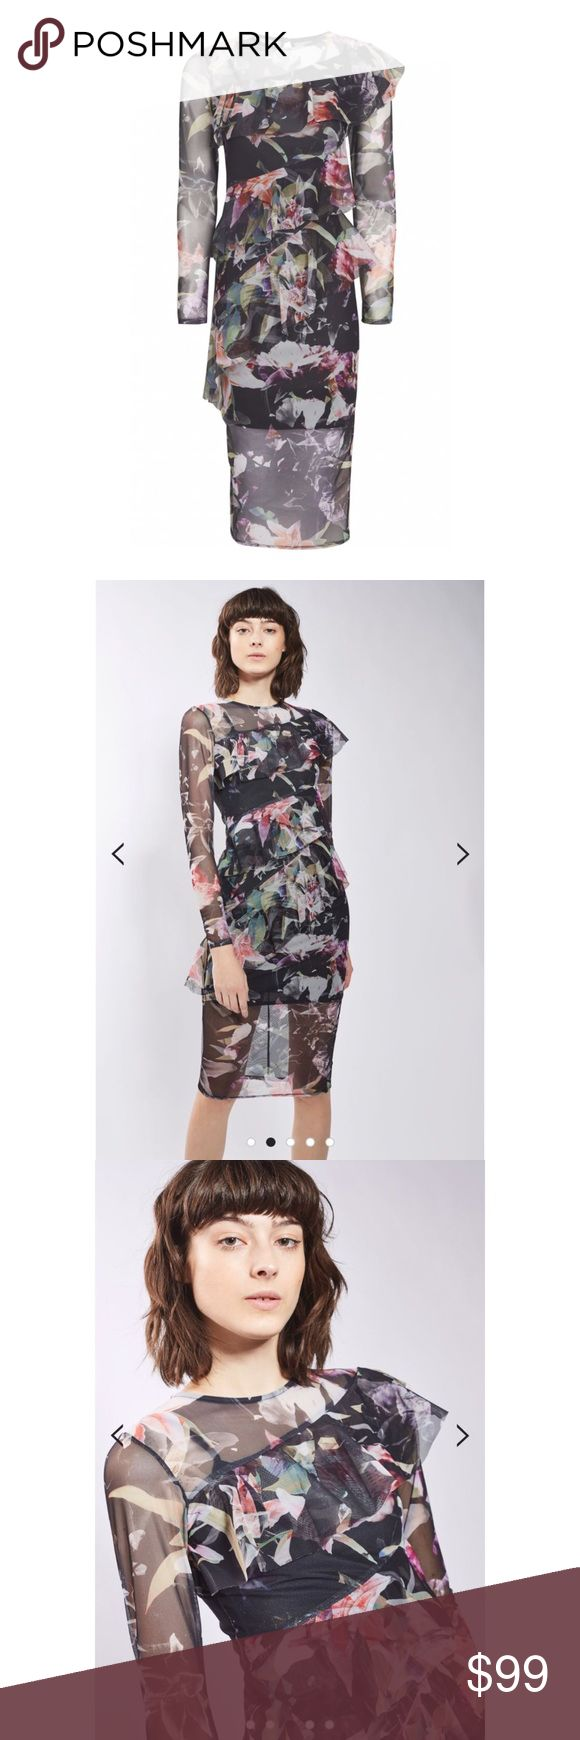 Topshop Floral Ruffle Mesh Midi Dress Floral printed multi colour mesh on a dark base with printed mesh frill long sleeves. 97% Polyester, 3% Elastane. Machine wash. Not lined. BRAND NEW never worn!! Topshop Dresses Midi